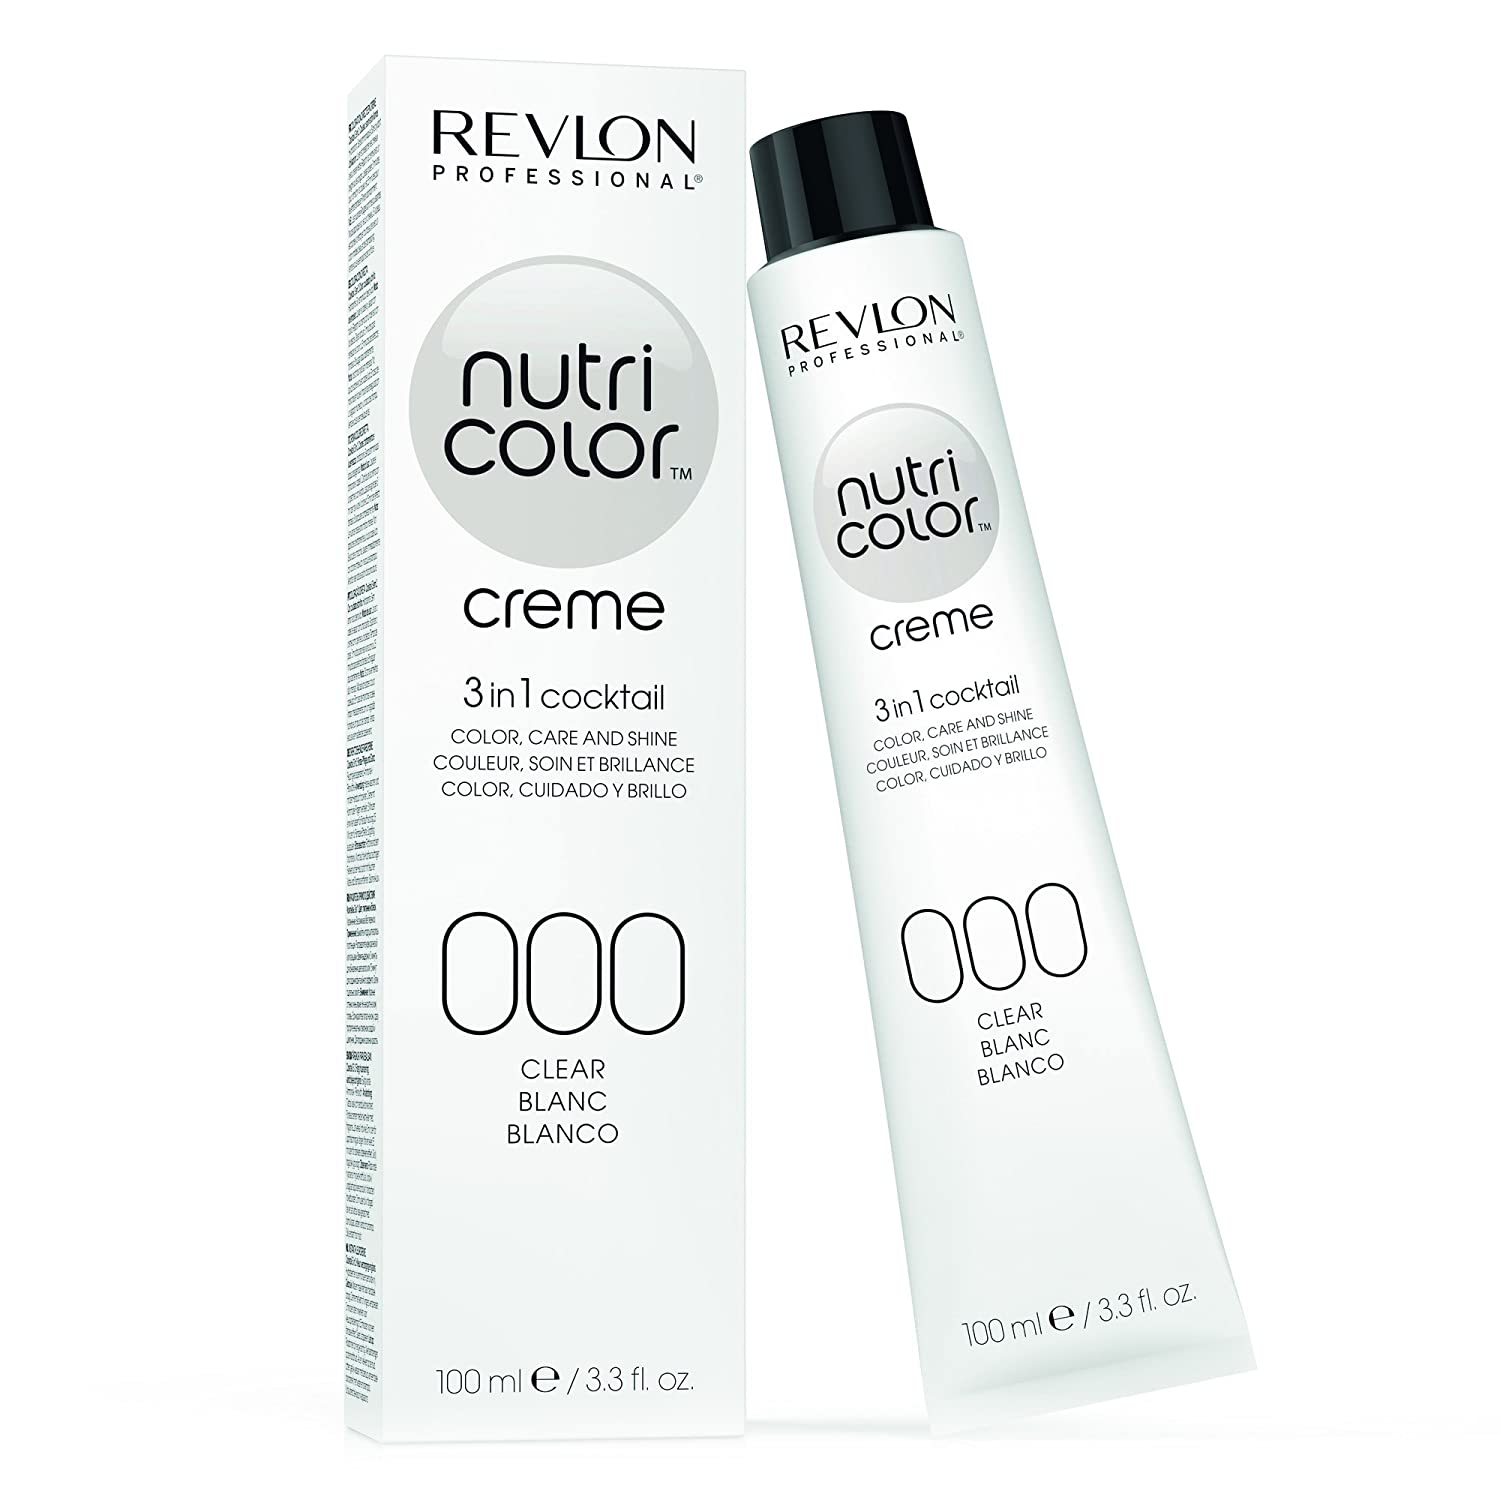 REVLON PROFESSIONAL Nutri Colour Creme 000 Clear 100 ml REVLON INTERNATIONAL CORPORATION 7241324000